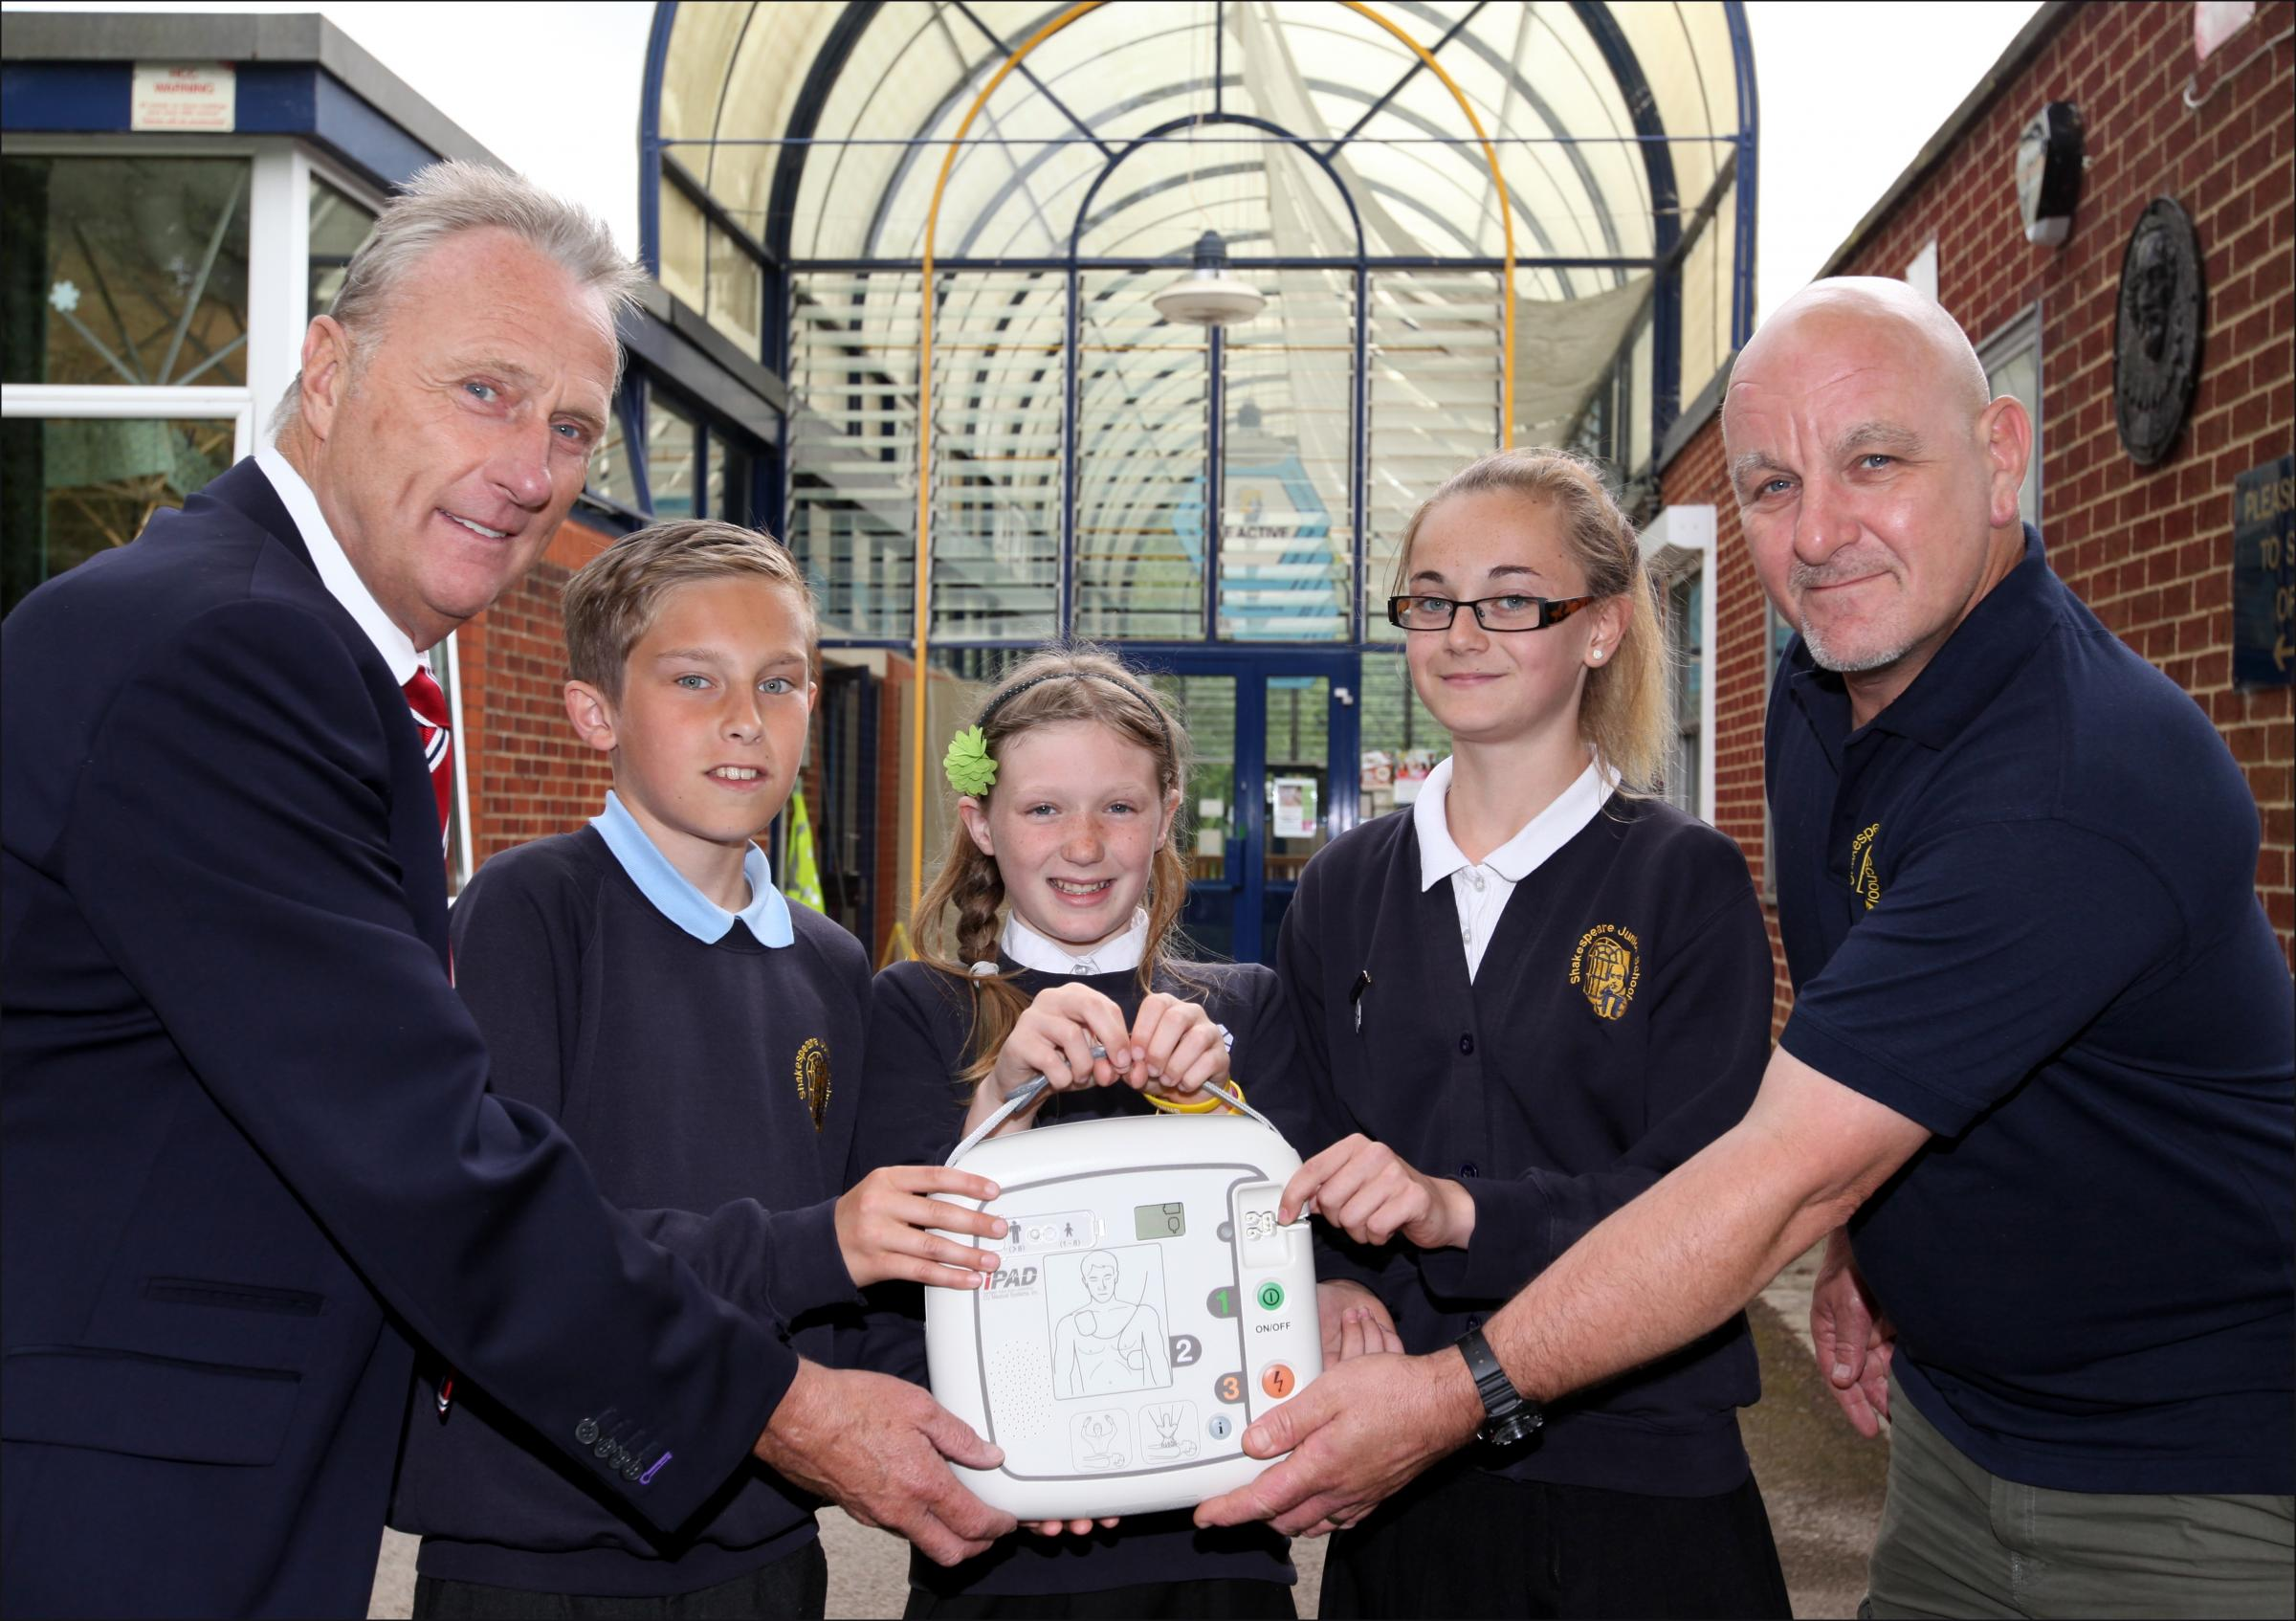 Stuart Deas of HP Contracts, pupils Benjamin Wyatt, Isobel Oram and Annalise Potter with school site manager John Troke